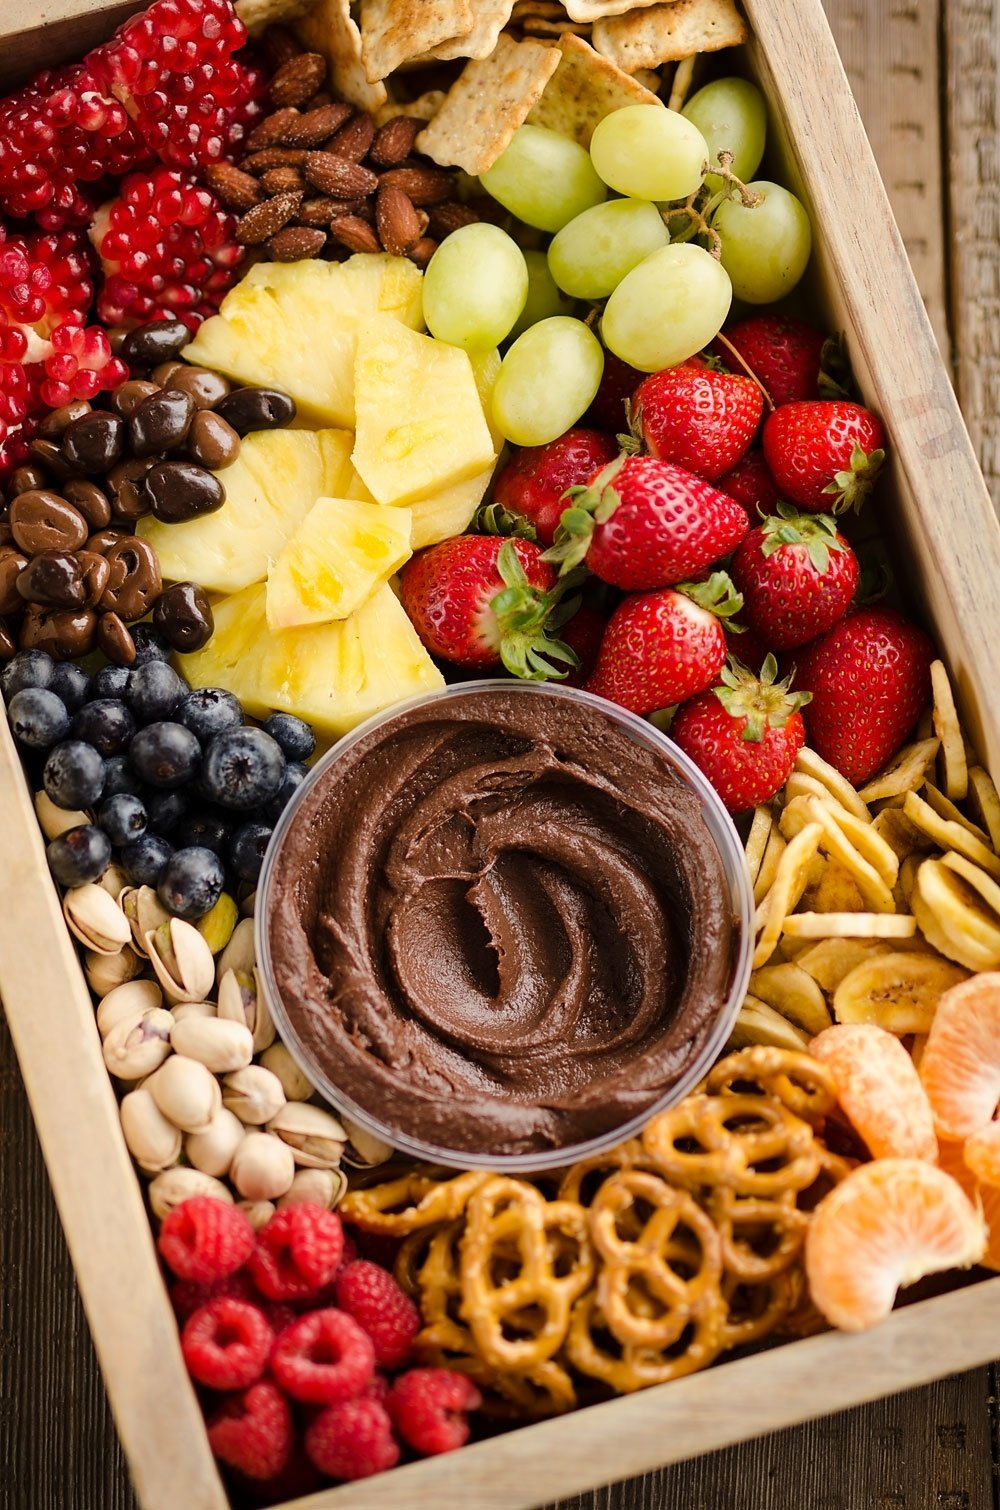 10 Attractive Fruit Tray Ideas For Parties healthy fruit chocolate party tray 2021